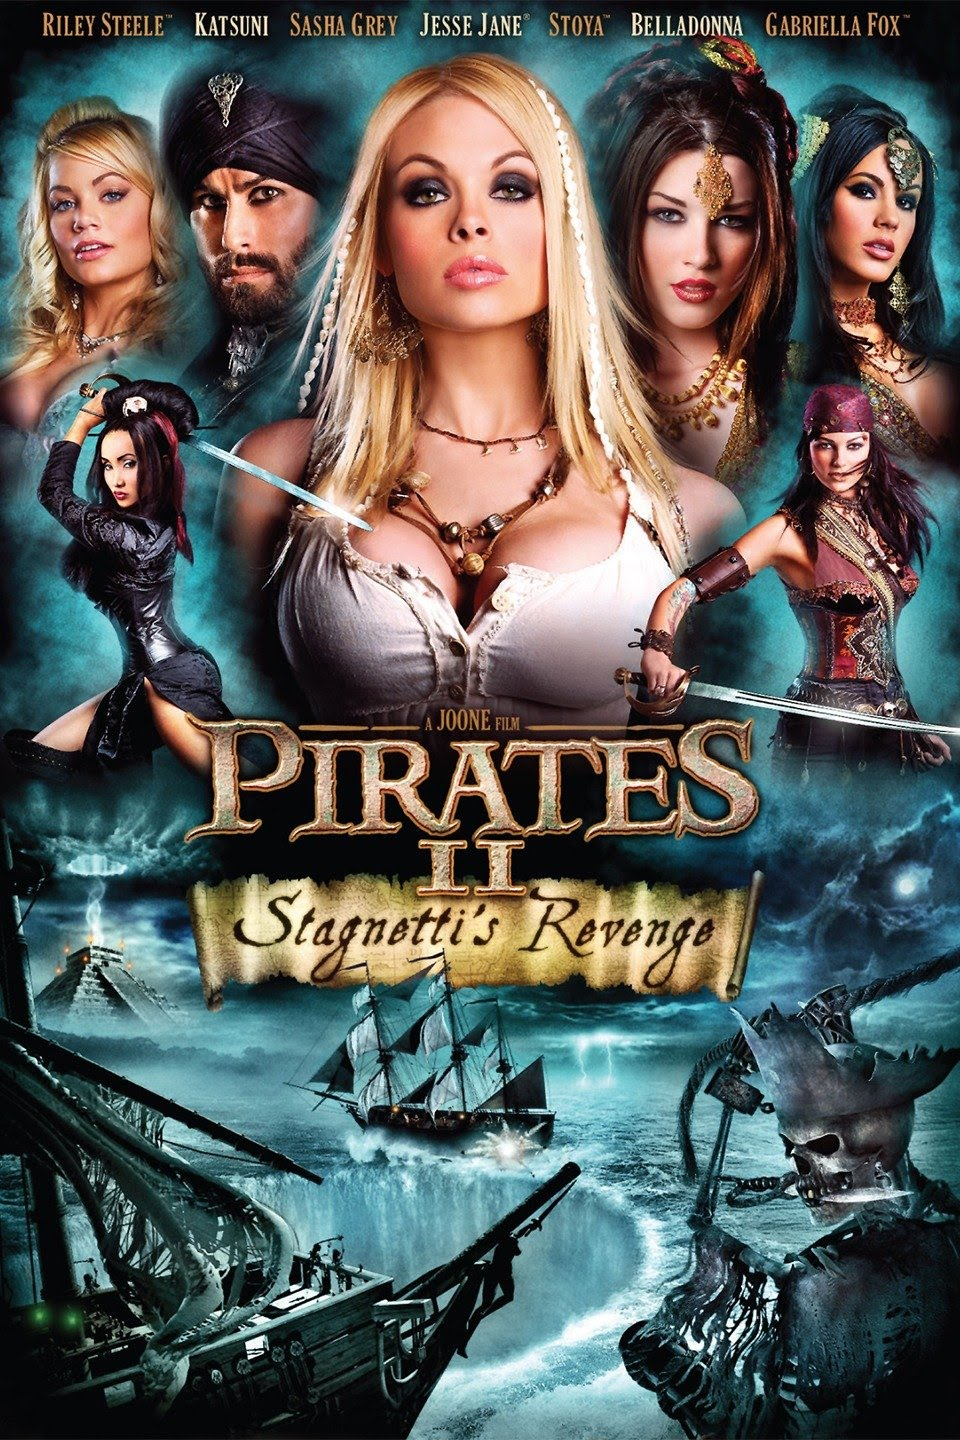 Download [18+] Pirates II: Stagnetti's Revenge (2008) {English With Subtitles} 480p | 720p